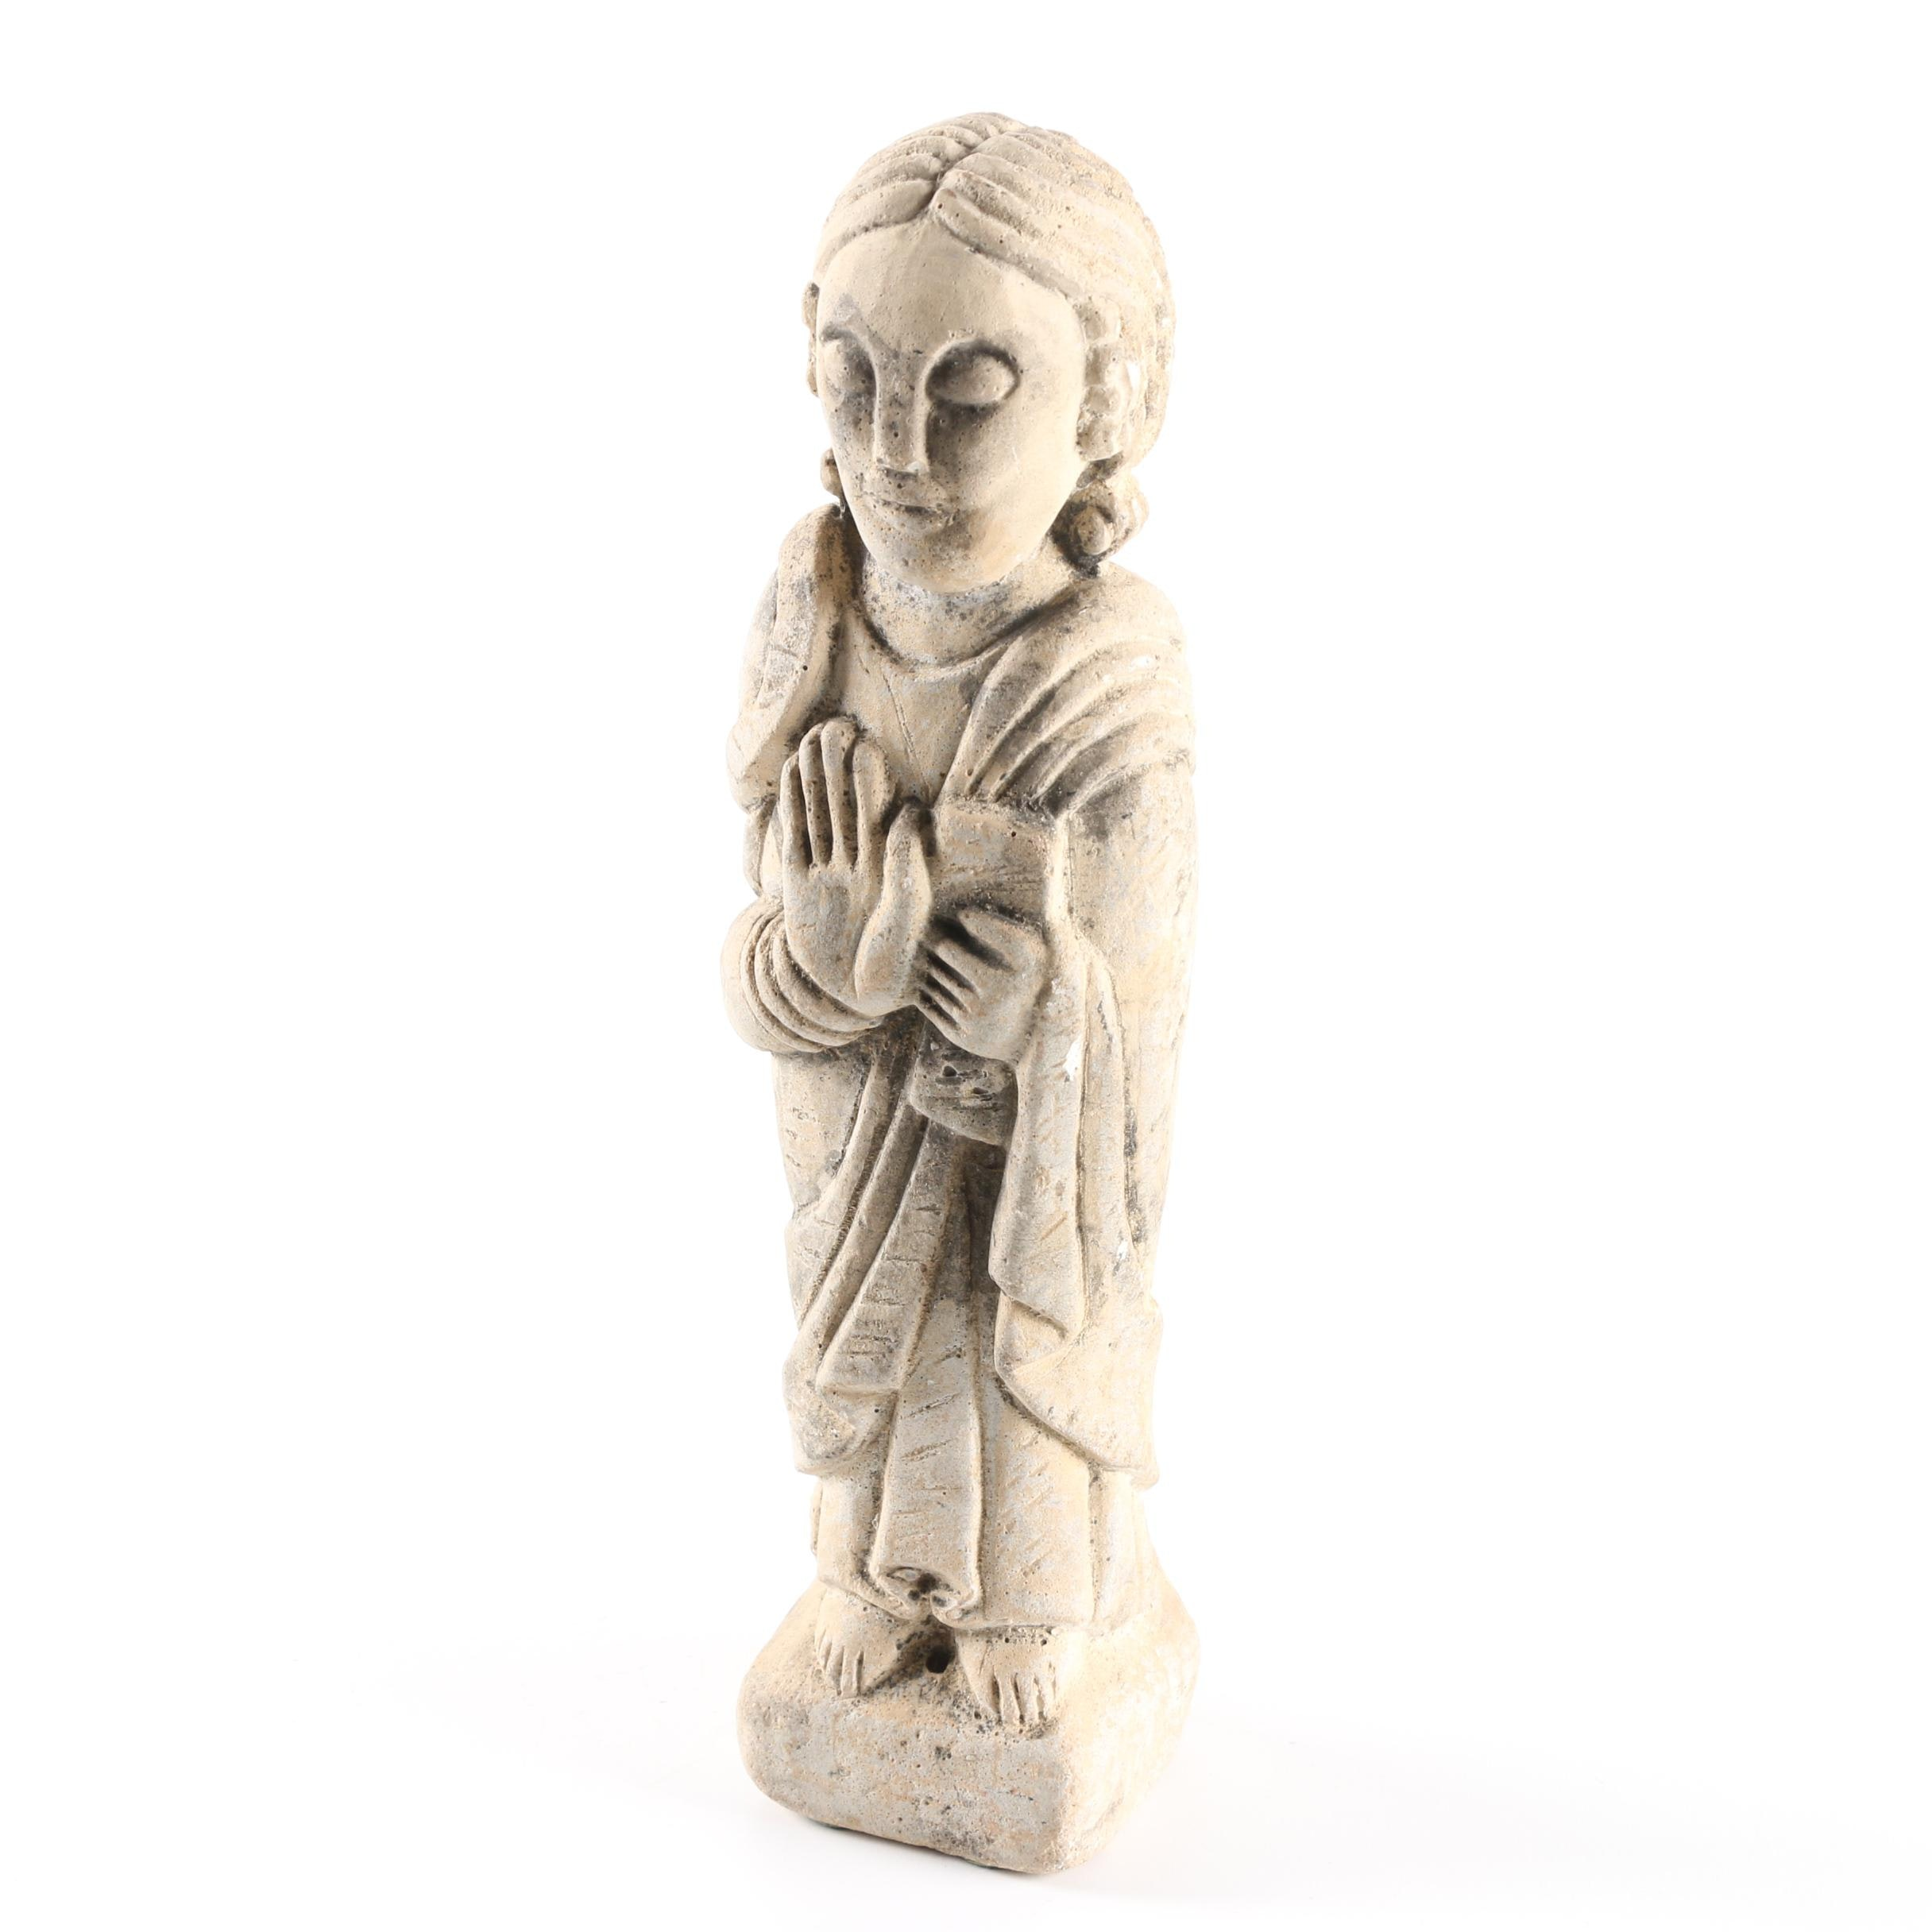 Romanesque Style Carved Sandstone Figure